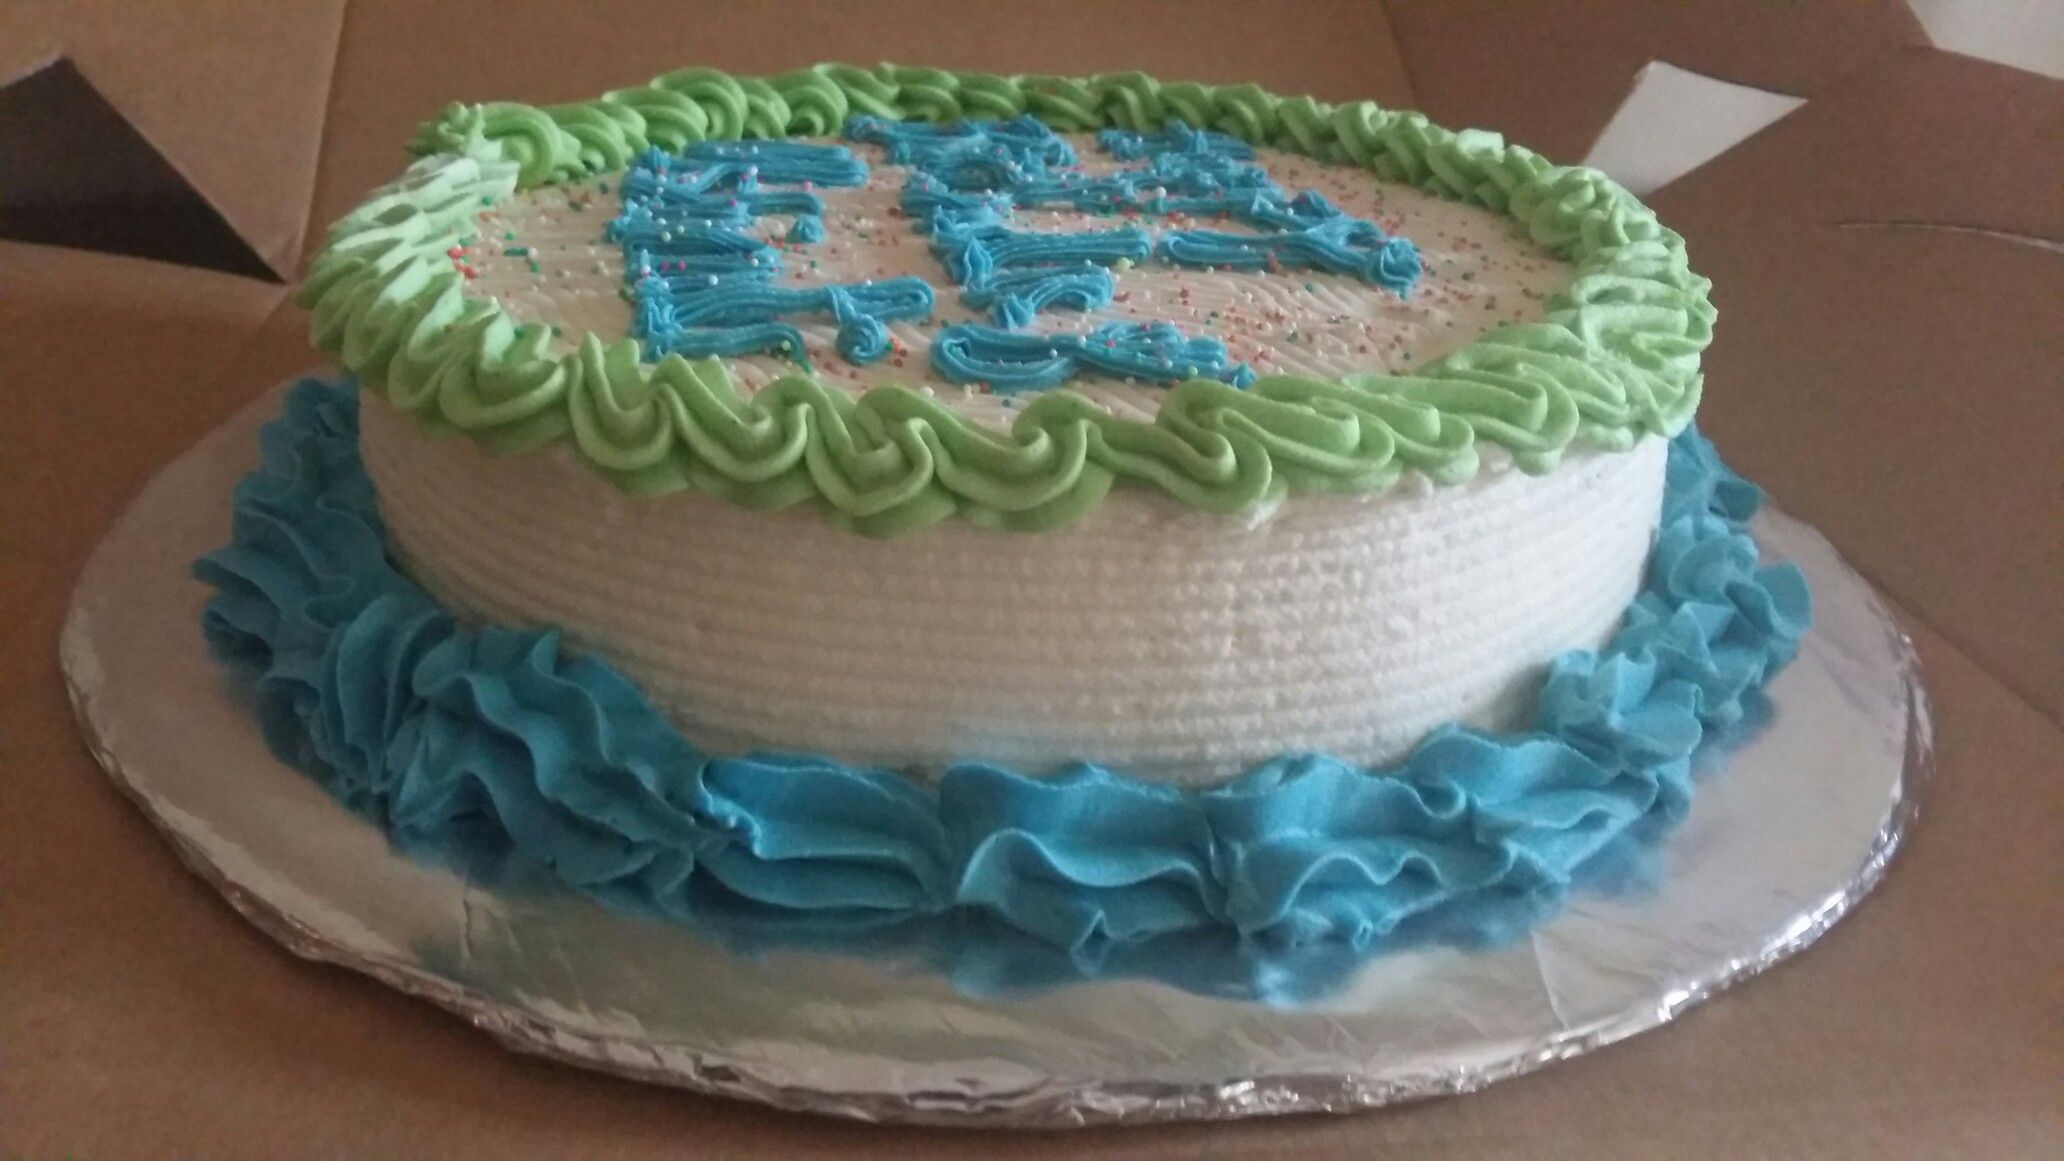 Moist vanilla cake. Crusting buttercream. Cake comb design. Sprinkles on top #crustingbuttercream